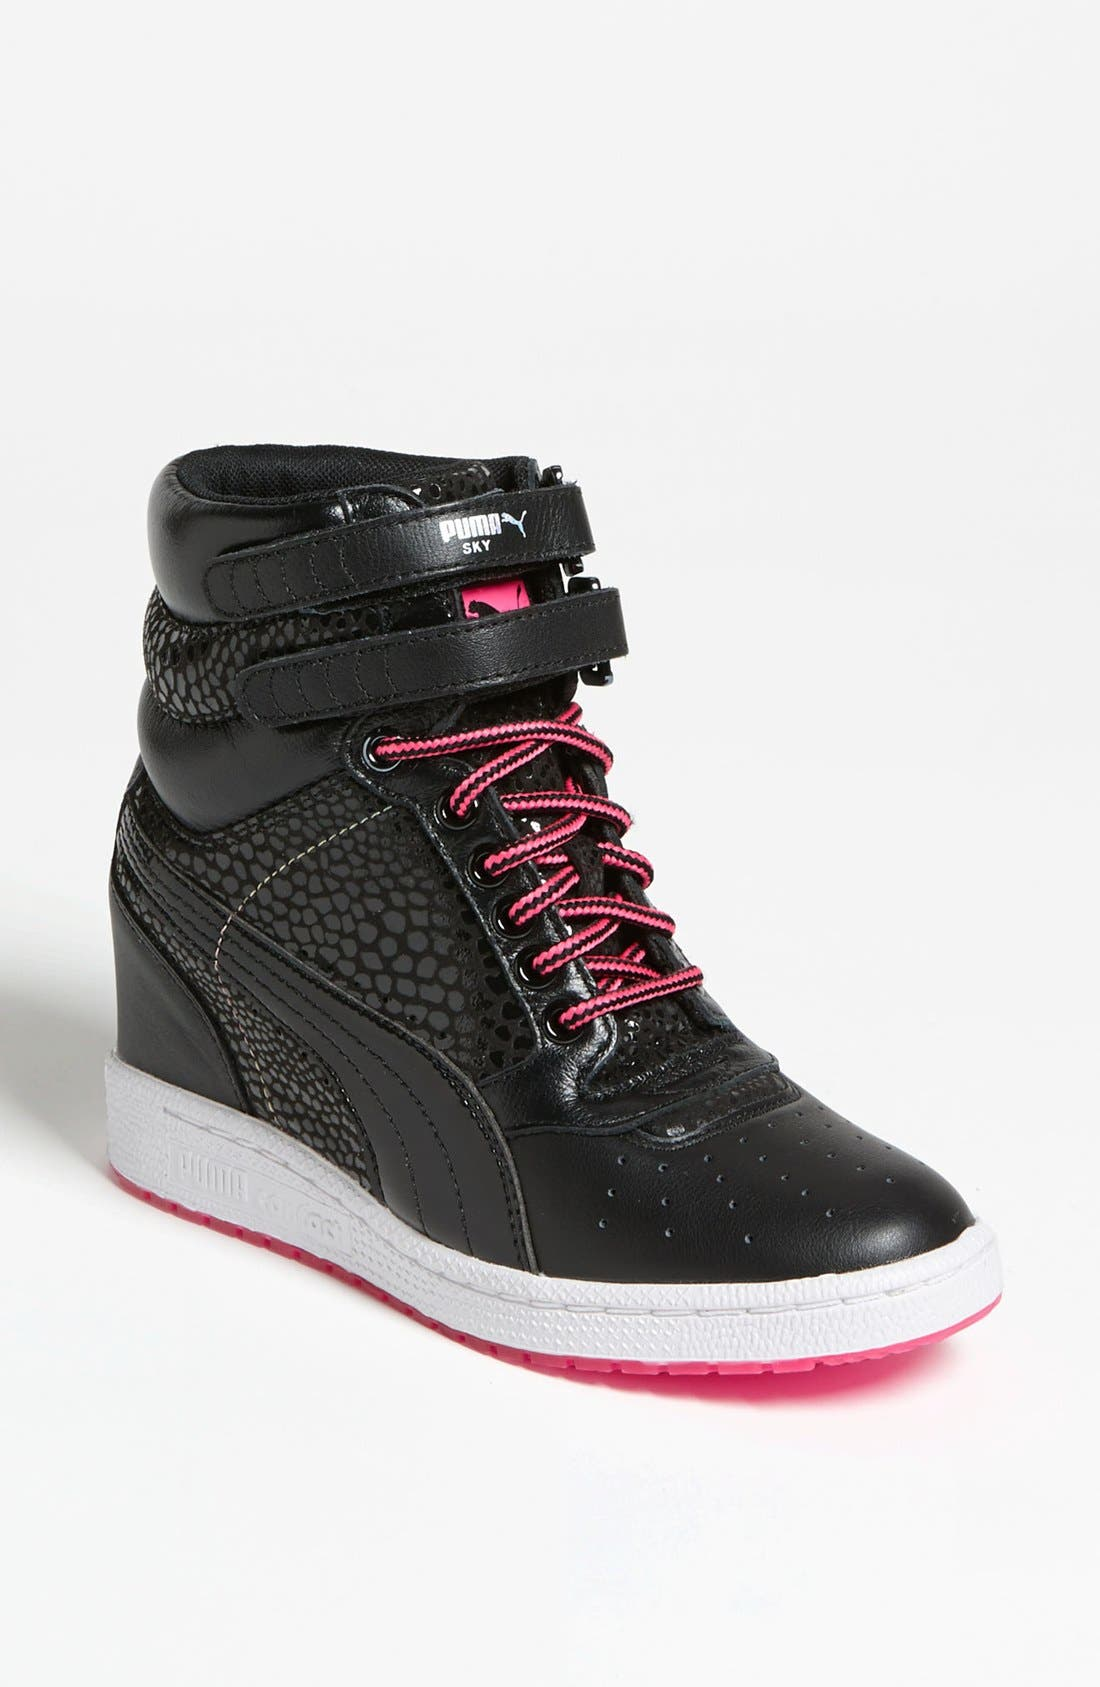 Alternate Image 1 Selected - PUMA 'Sky Wedge' Sneaker (Women)